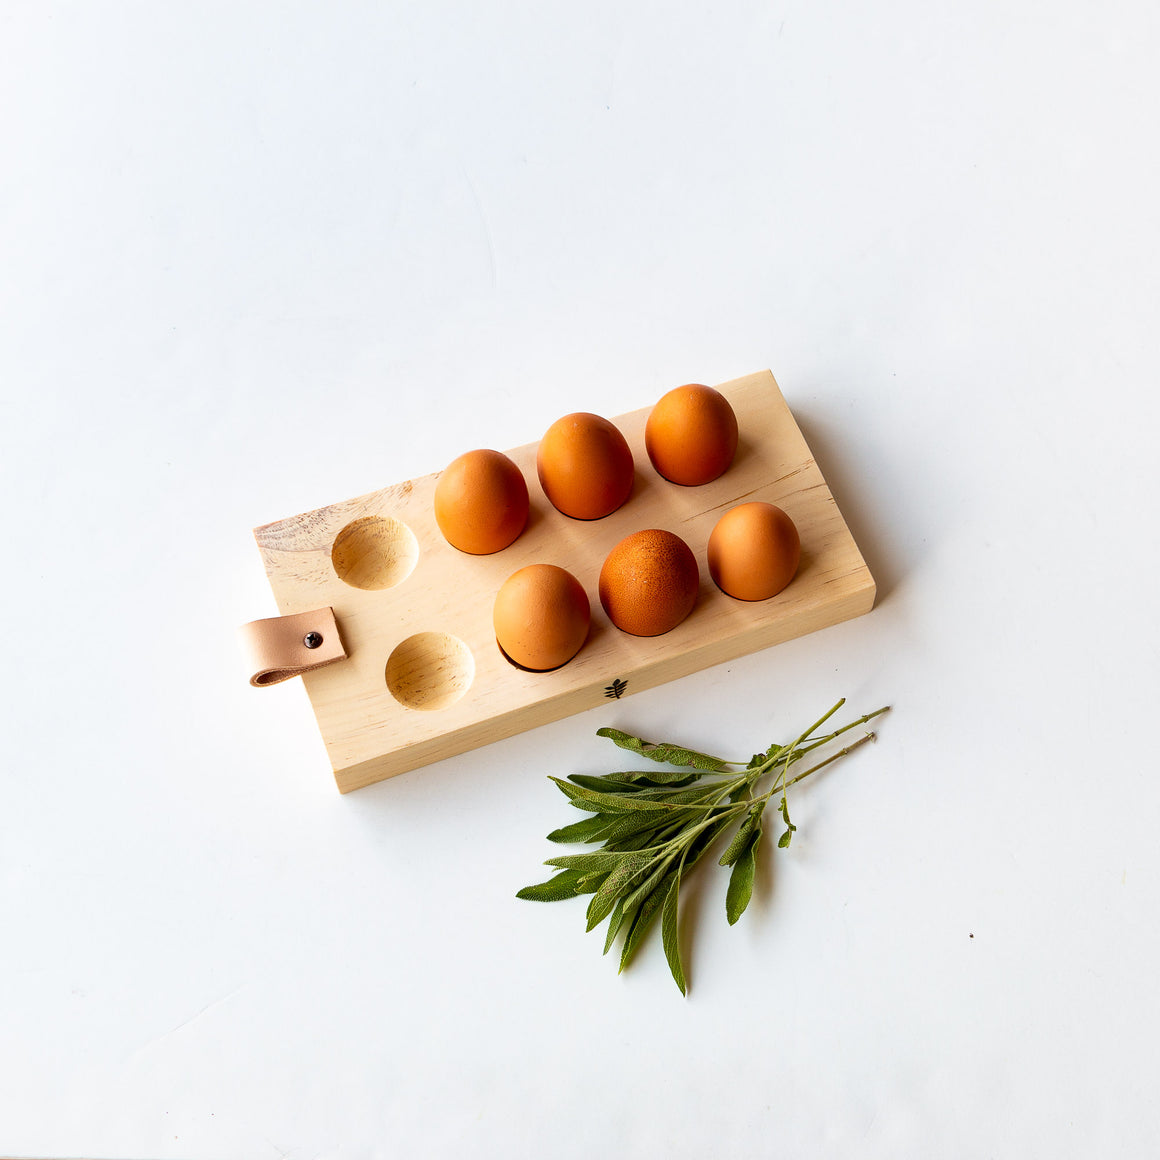 Handmade Recycled Wood Egg Holder Tray - Sold by Chic & Basta